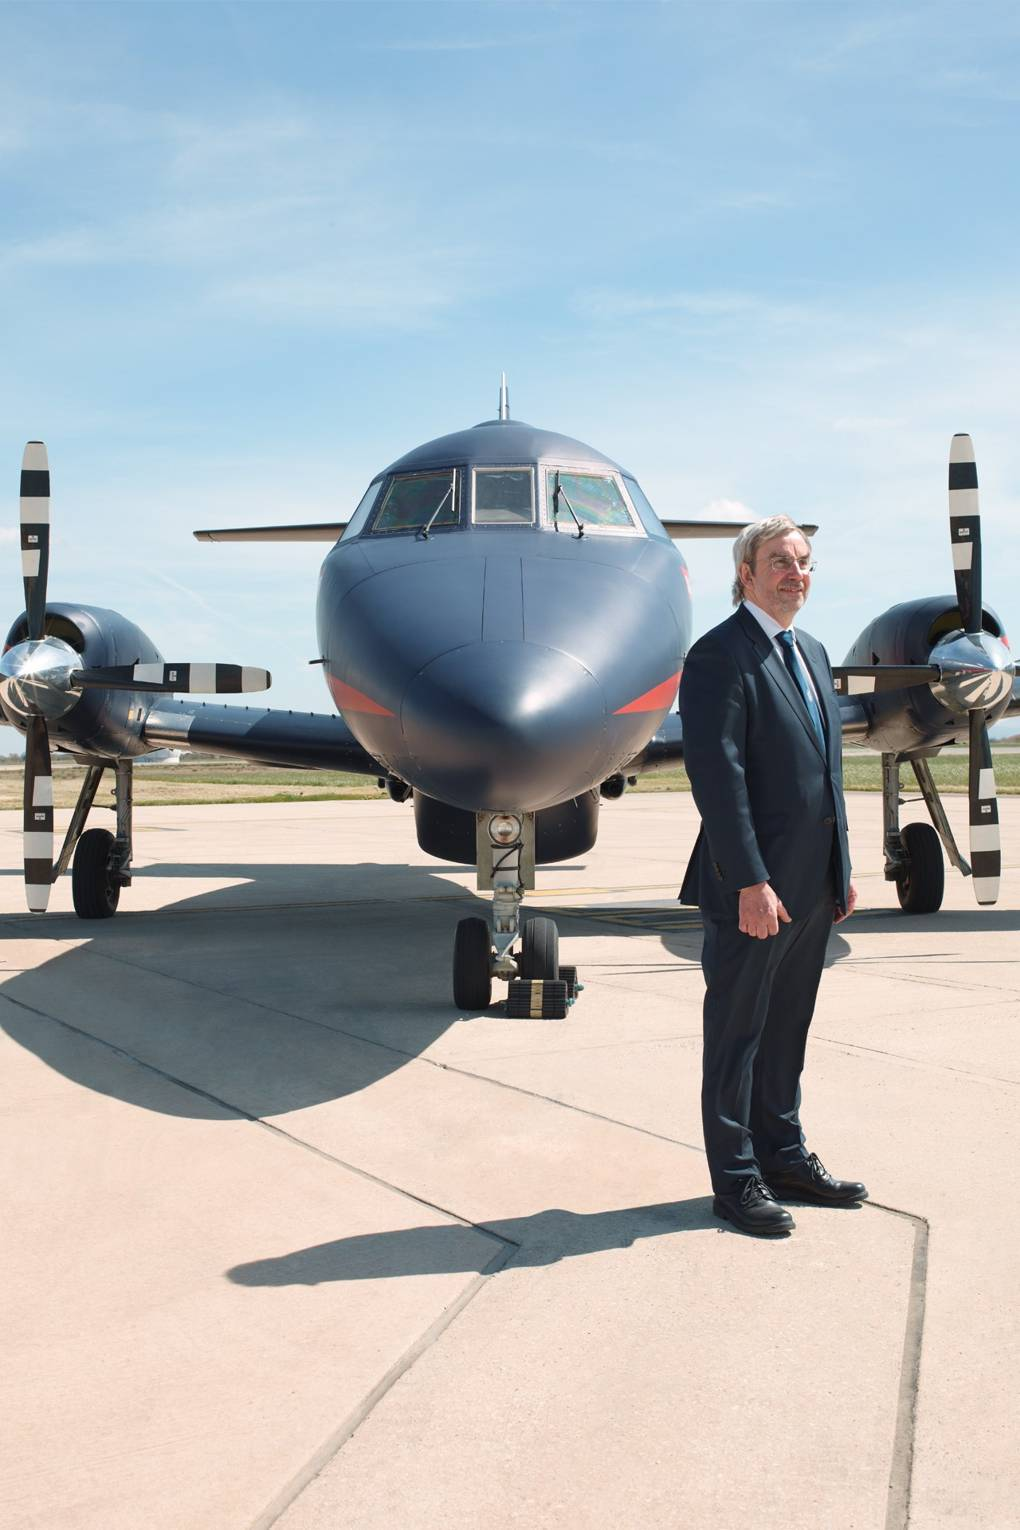 Meet the man who flies planes from the ground | WIRED UK